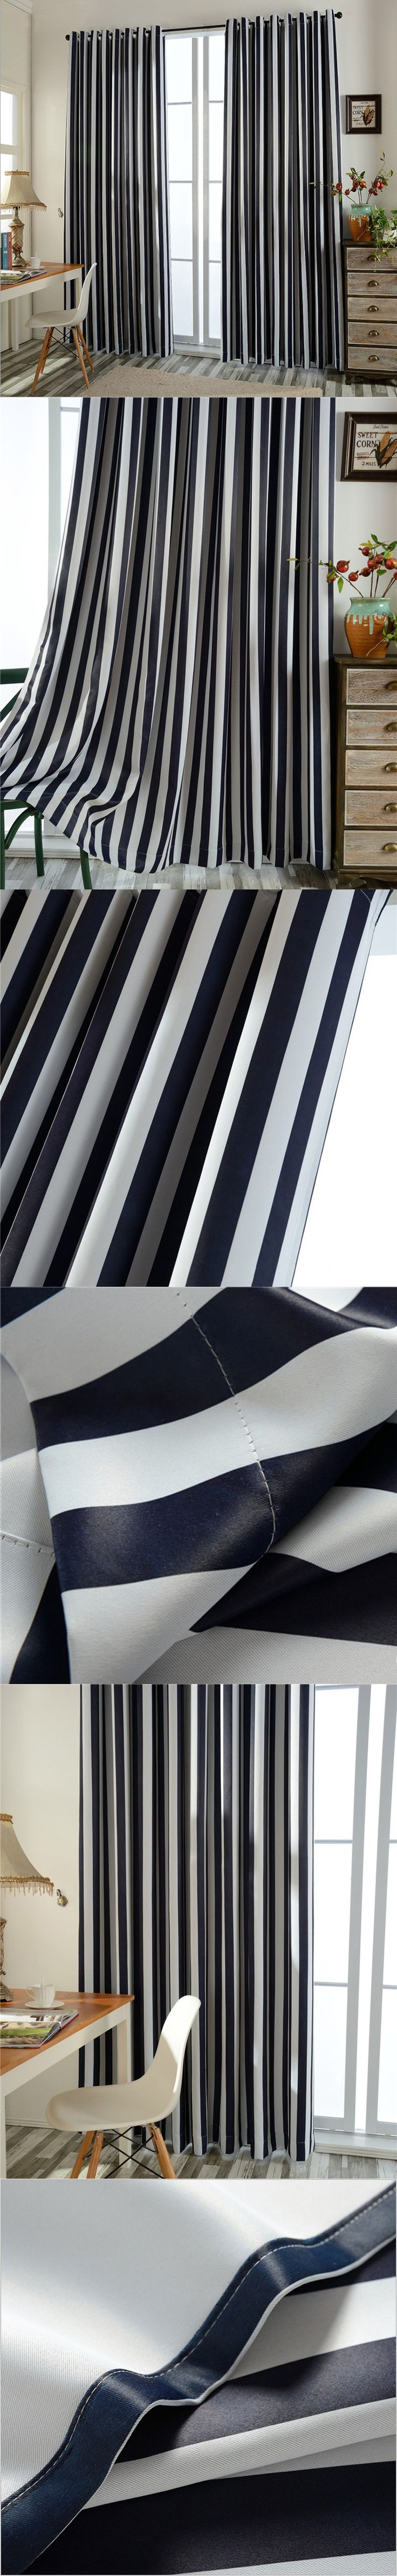 Black white striped window curtains Grommet top Bedroom Thermal Insulated Drapes Modern Decoration Blackout curtains B16105 $29.5